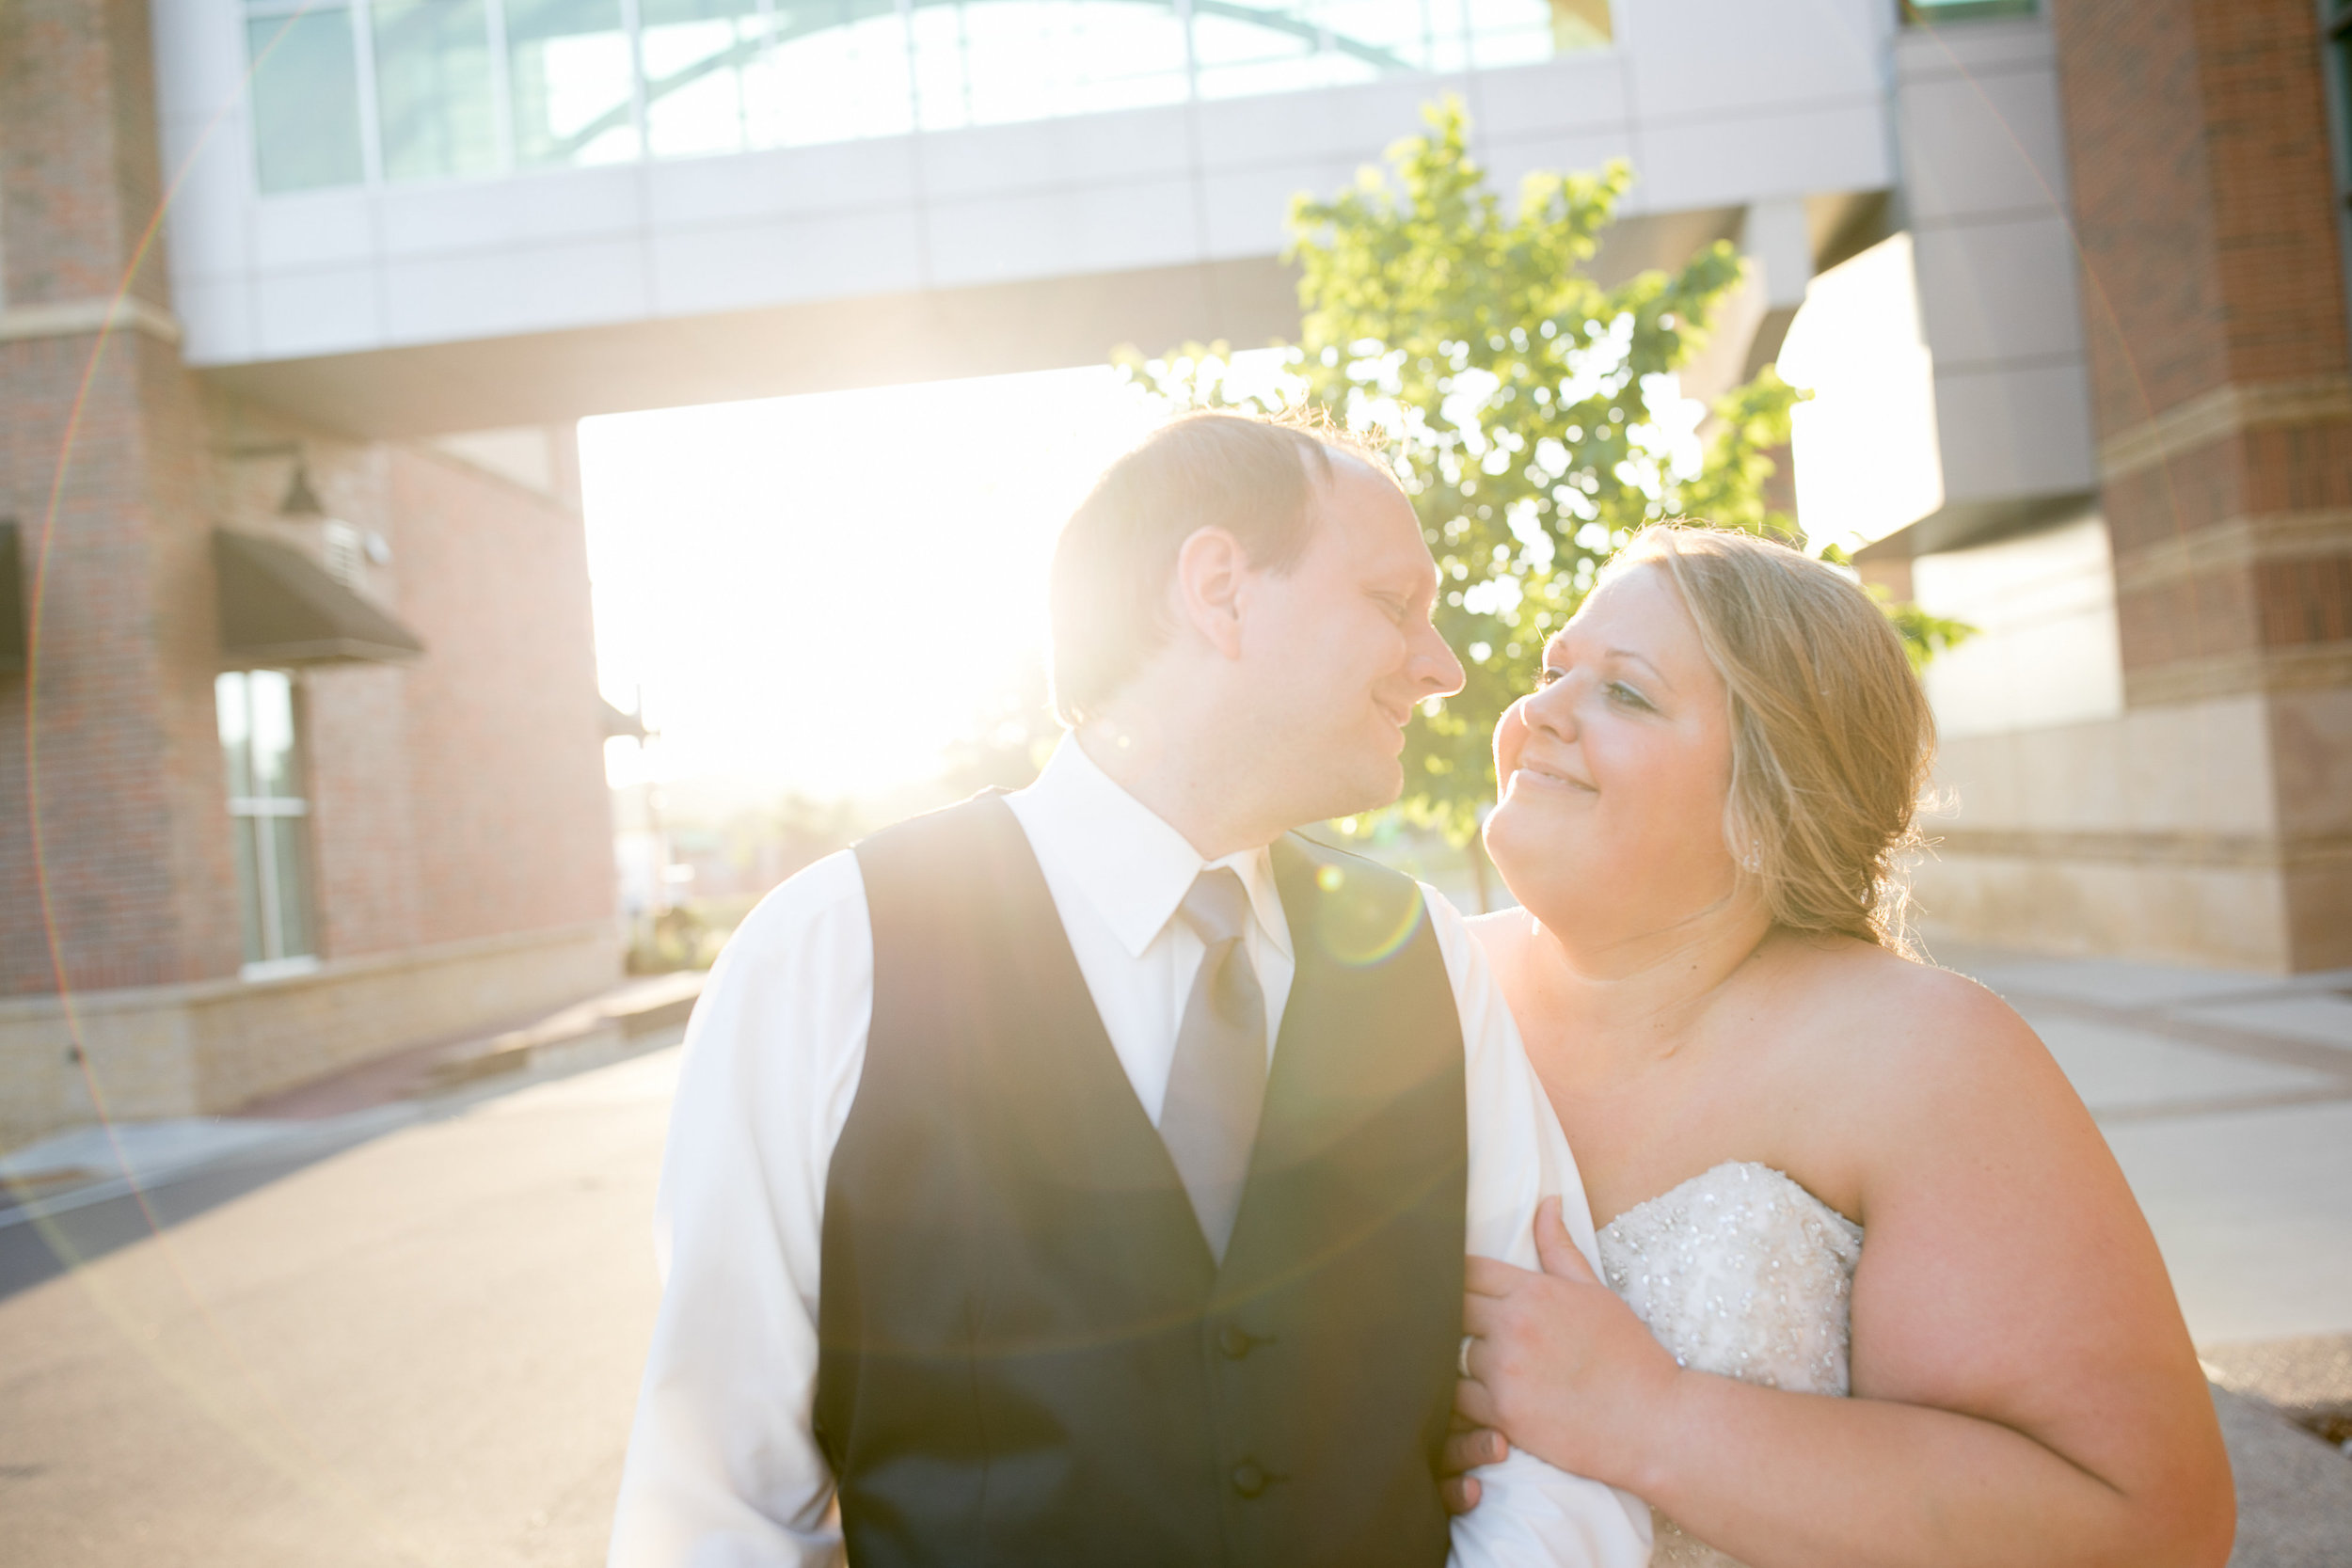 Golden hour sunset photo | Alice HQ Mankato photographer | Luxe bridal gown | dark grey tie | wedding coordinator Sixpence Events